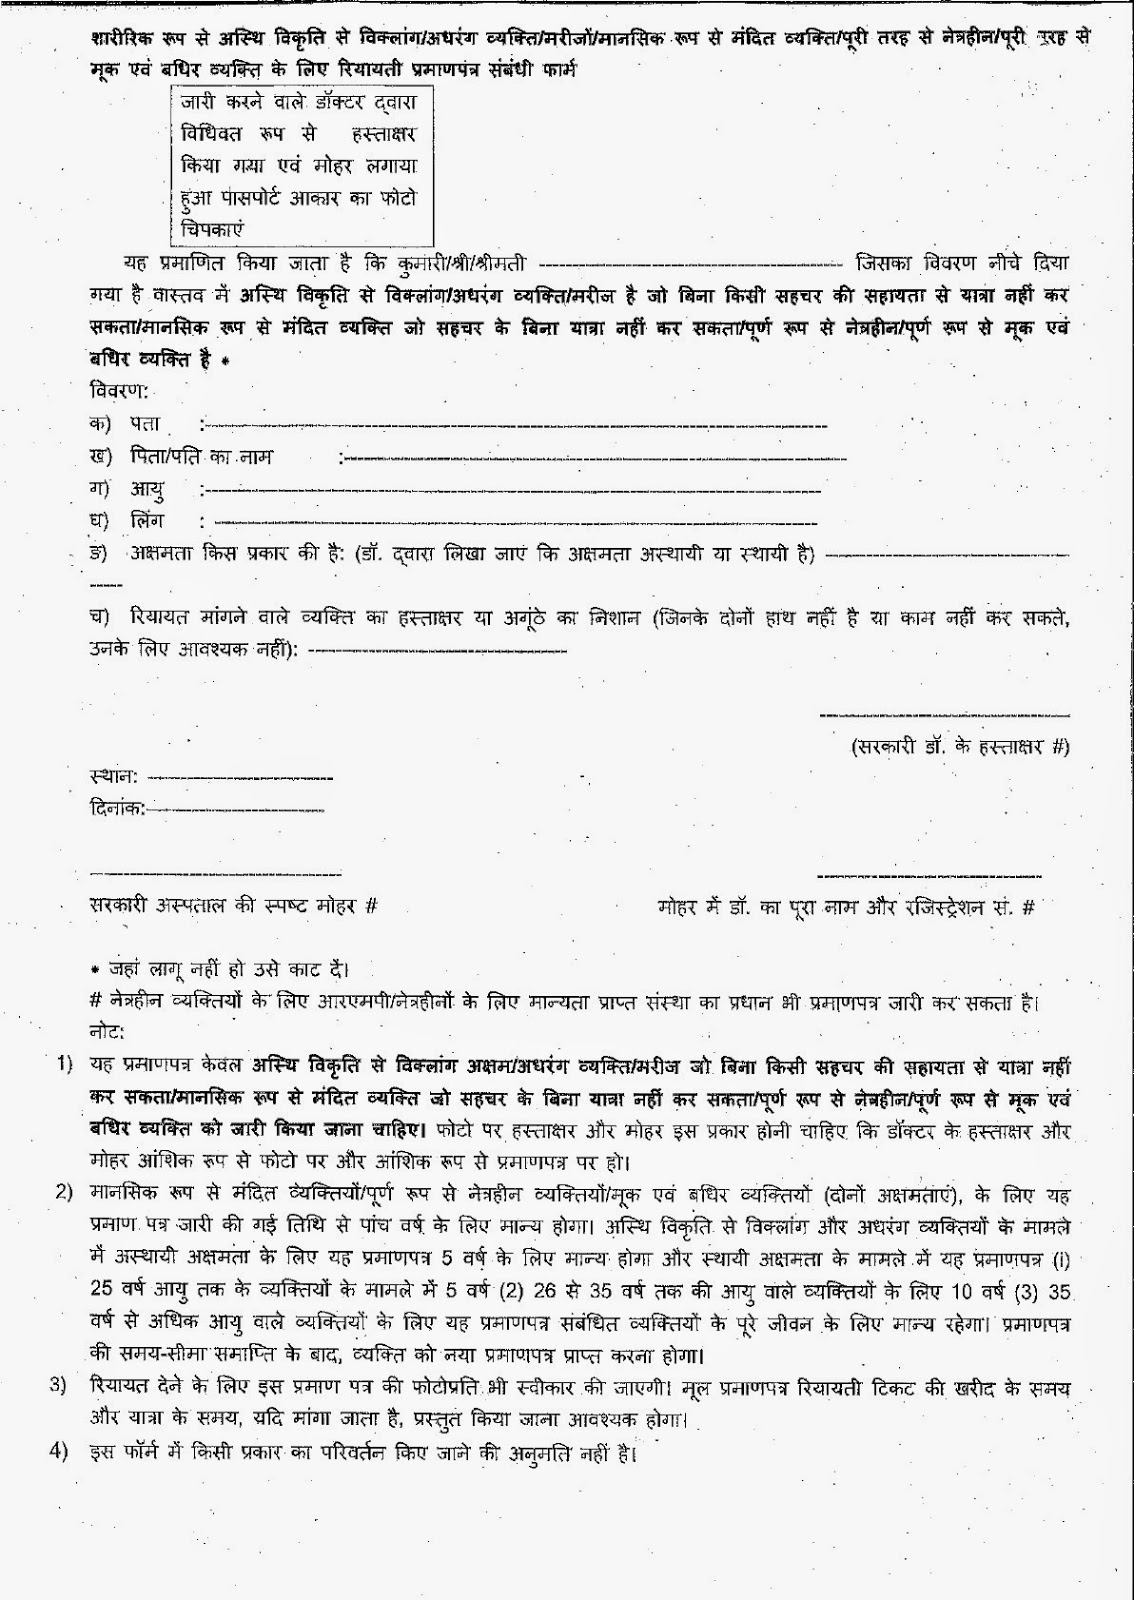 Handicapped Certificate Application Form